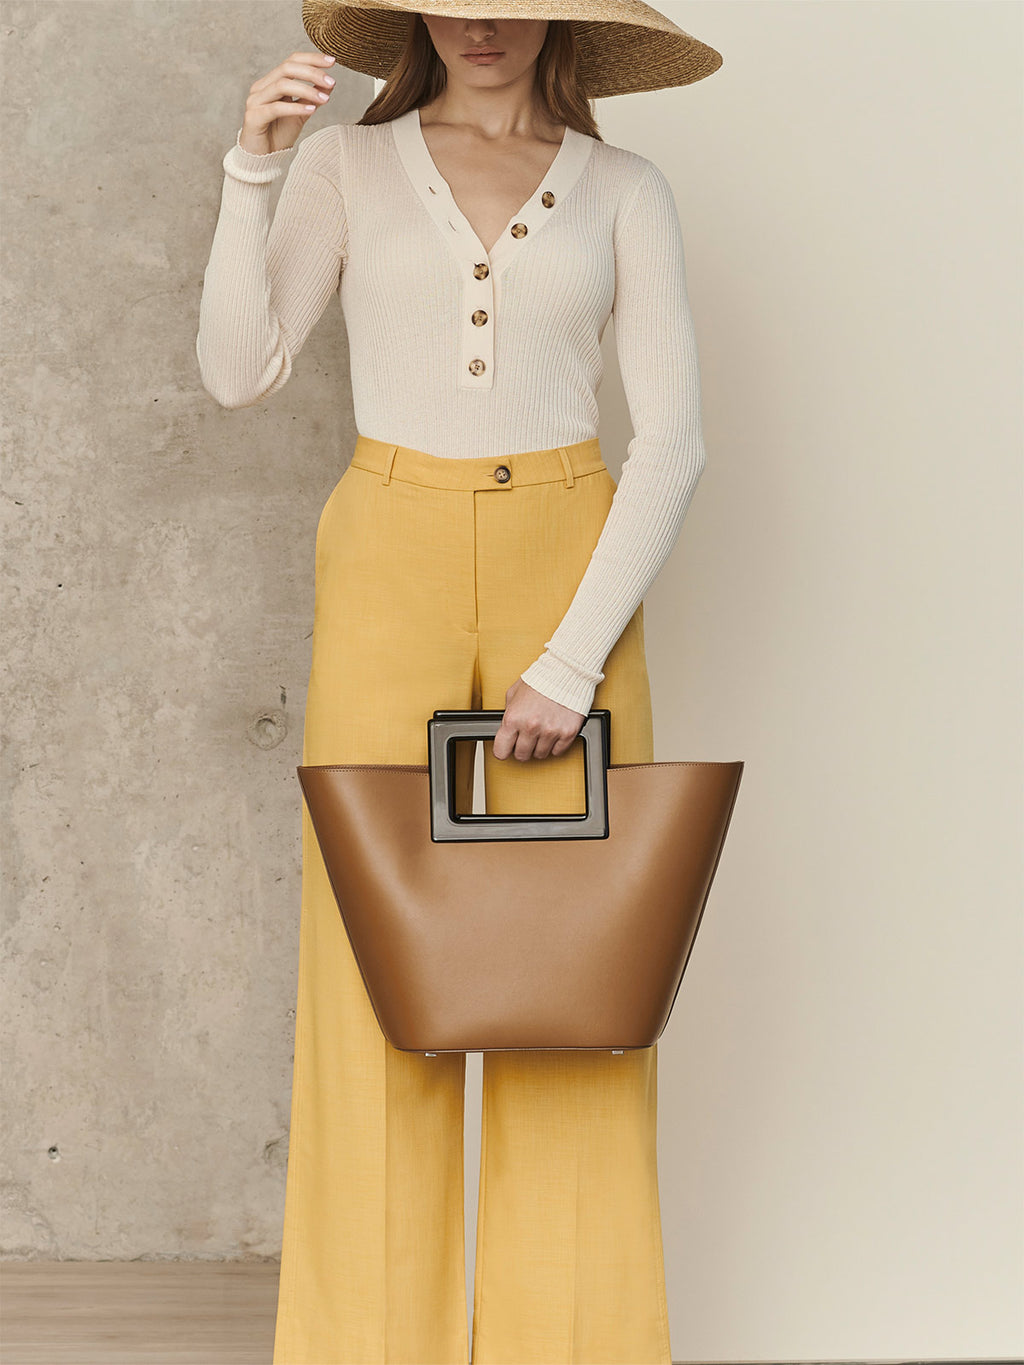 Riviera Bag | Caramel Leather